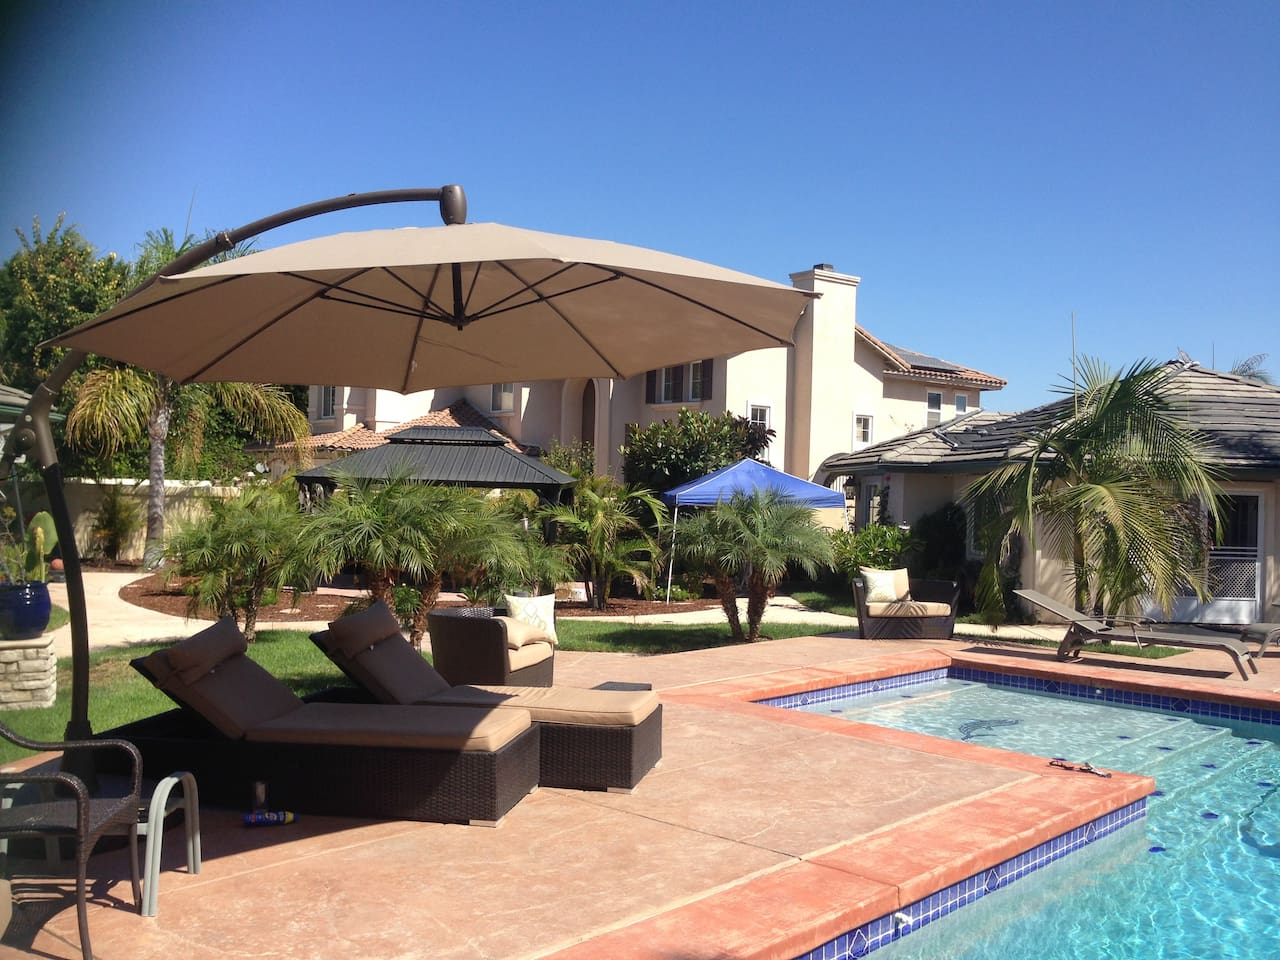 Lots of outdoor furniture to enjoy the pool!